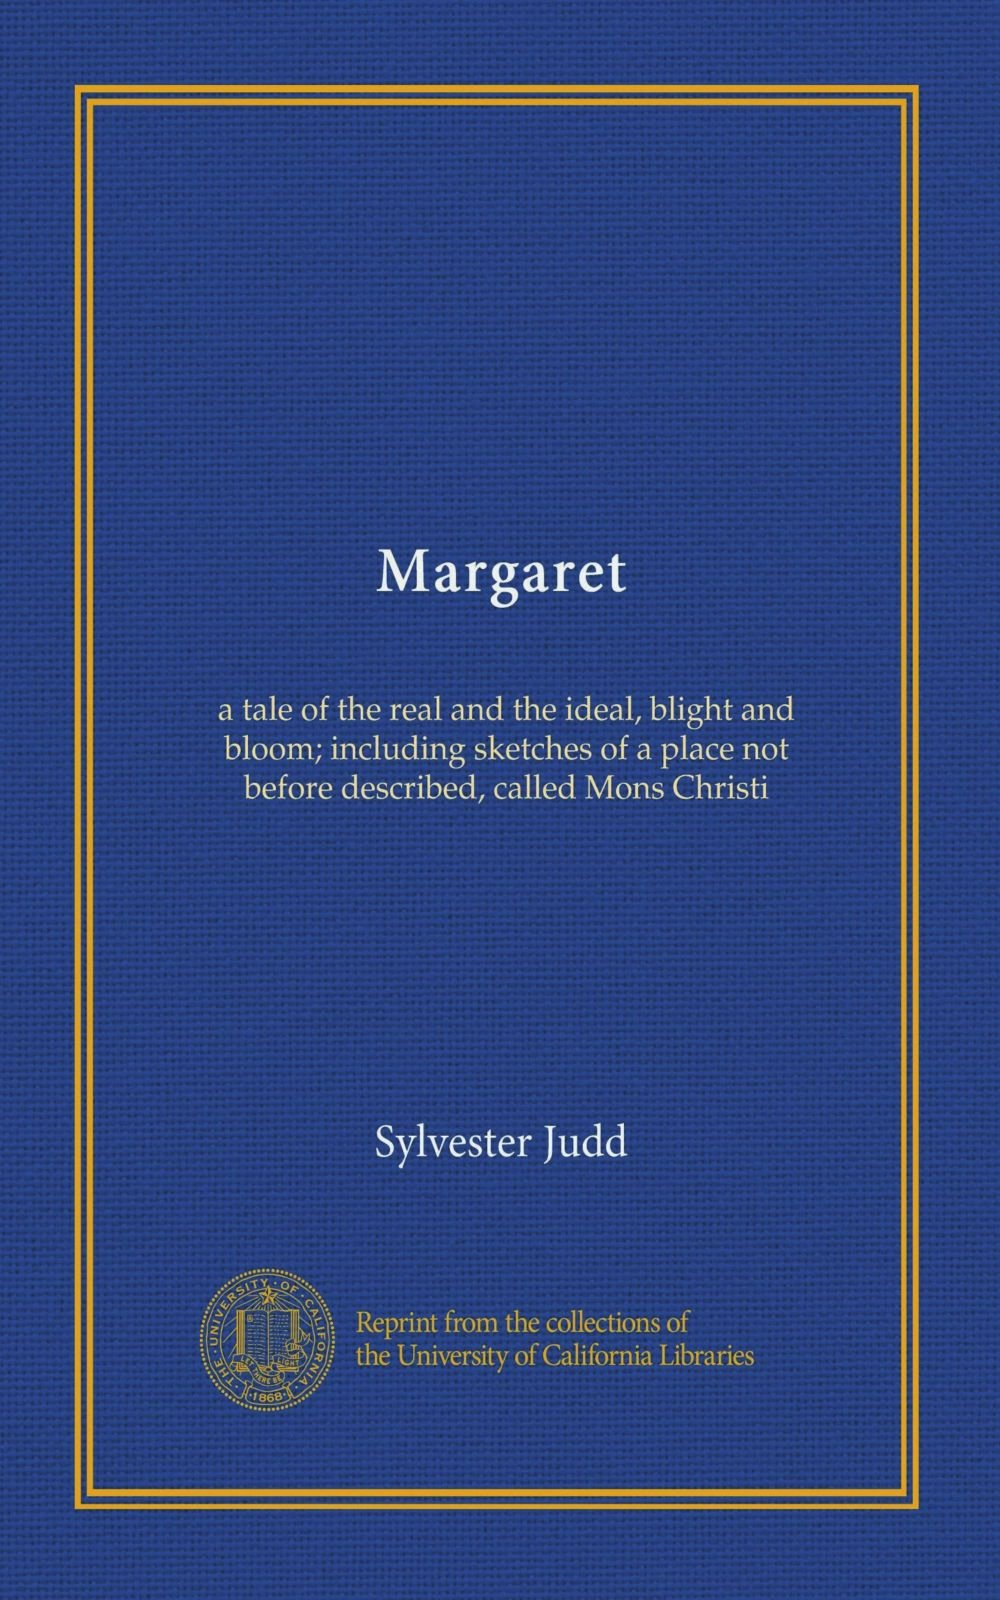 Margaret: a tale of the real and the ideal, blight and bloom; including sketches of a place not before described, called Mons Christi pdf